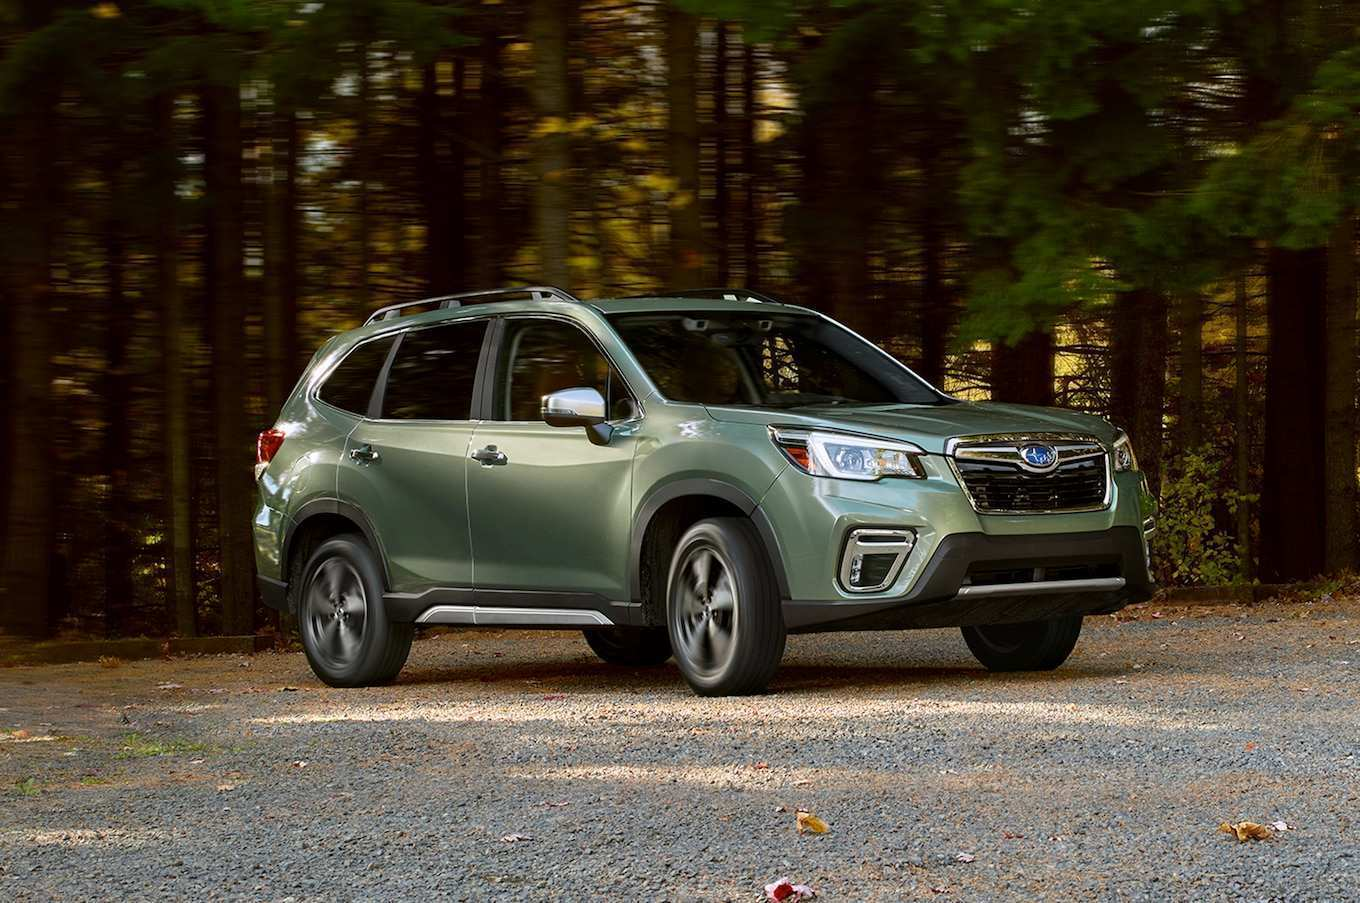 71 Concept of The 2019 Subaru Forester Review for The 2019 Subaru Forester